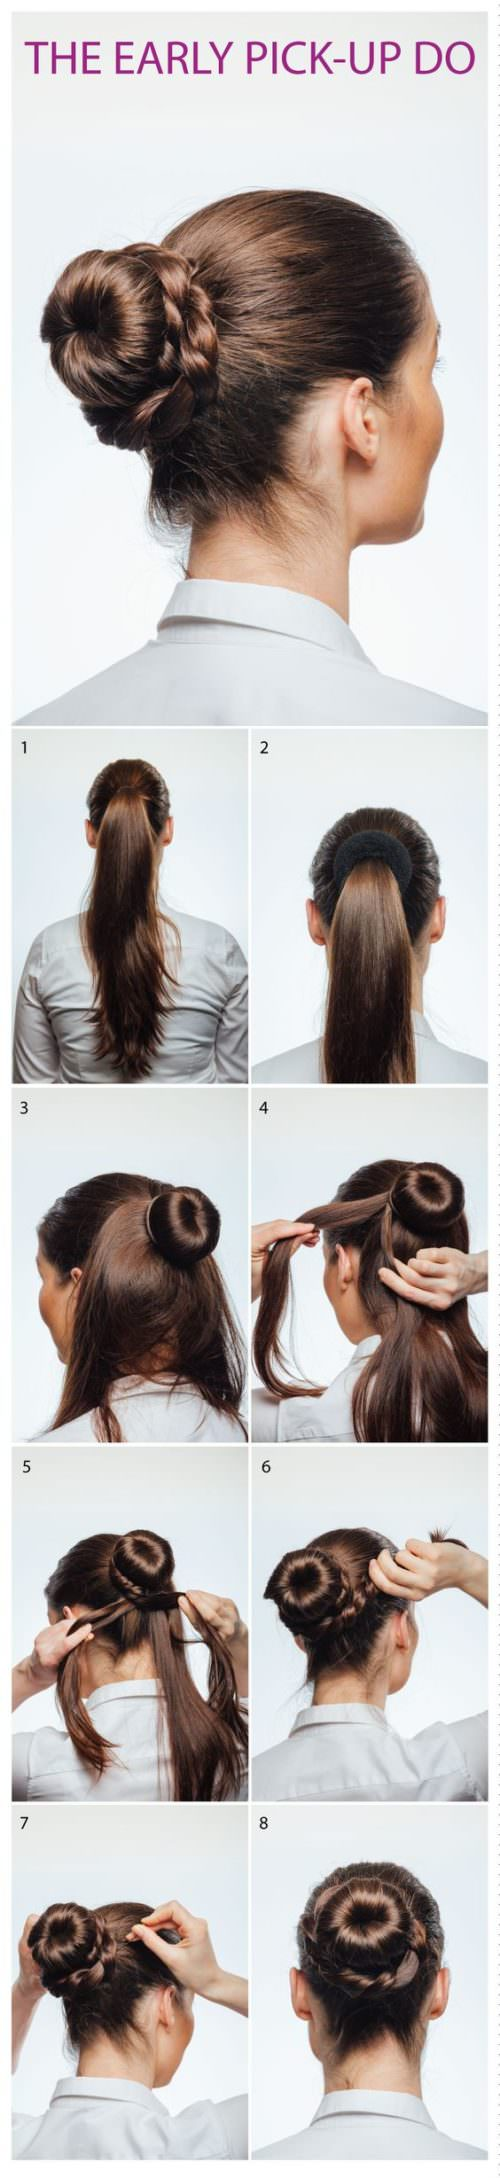 17 Air hostess hairstyles you can do at home Page 3 of 17 Hairstyle ...